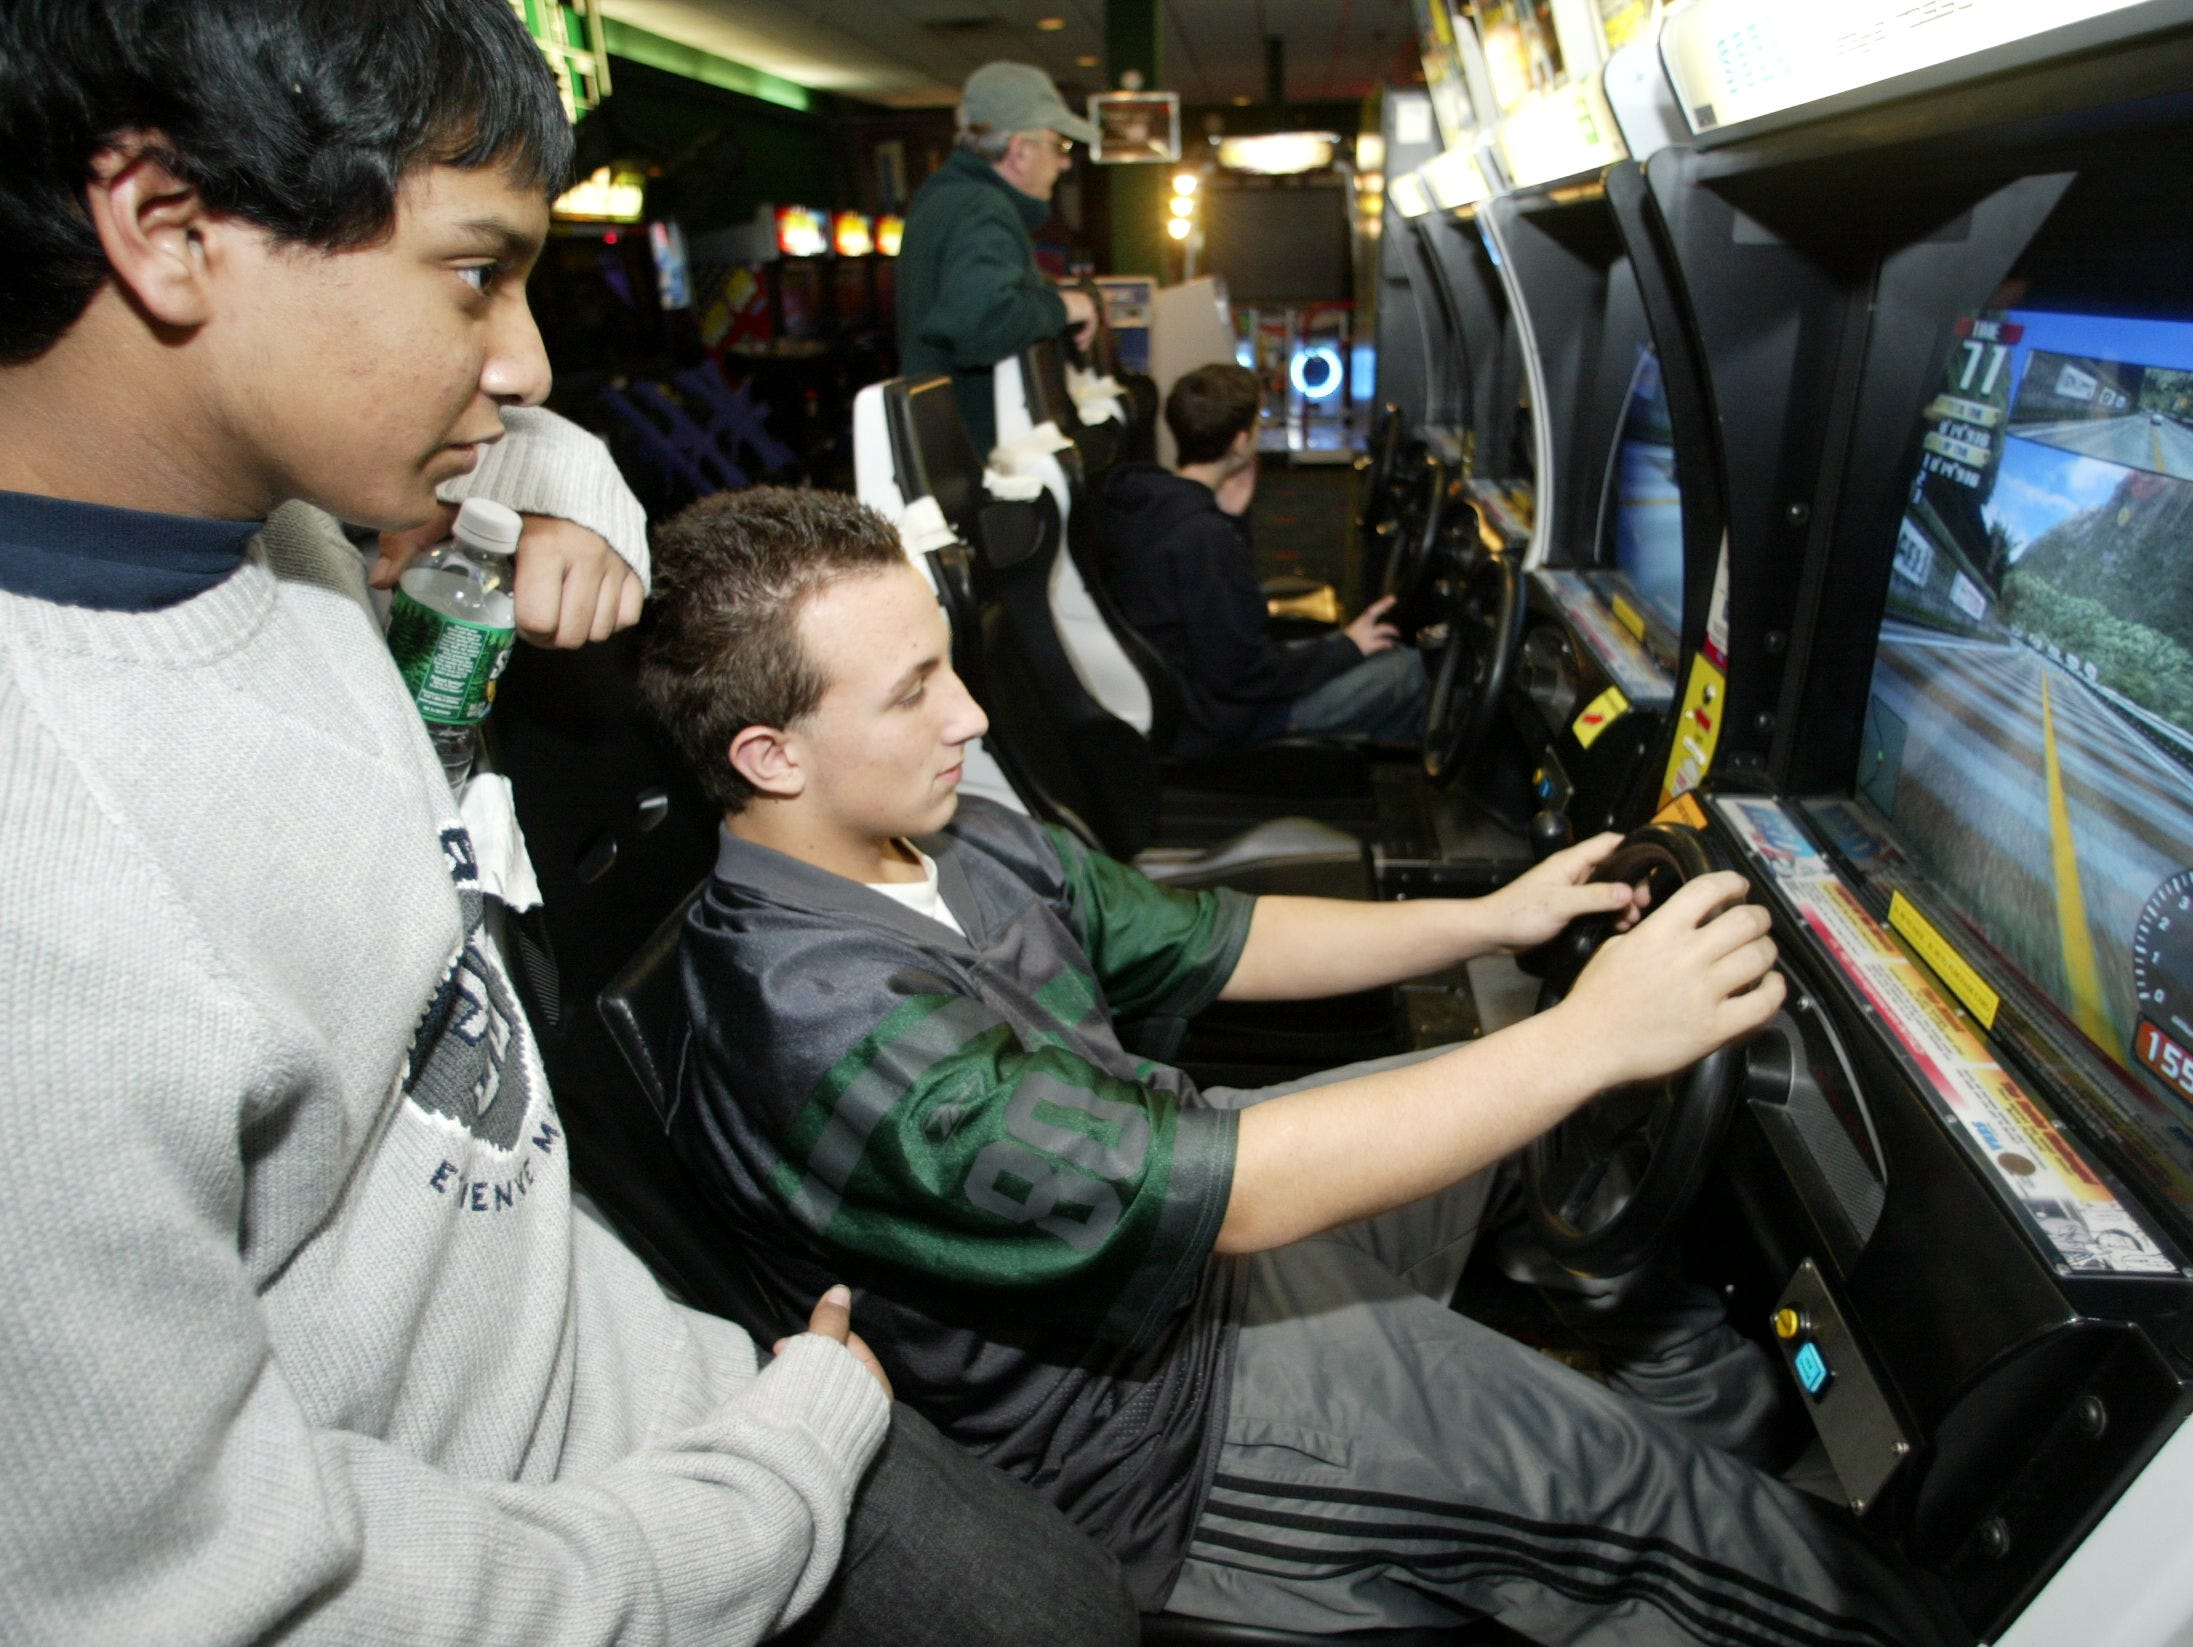 The Fun n' Games Arcade  at the Willowbrook Mall on December 20, 2003.